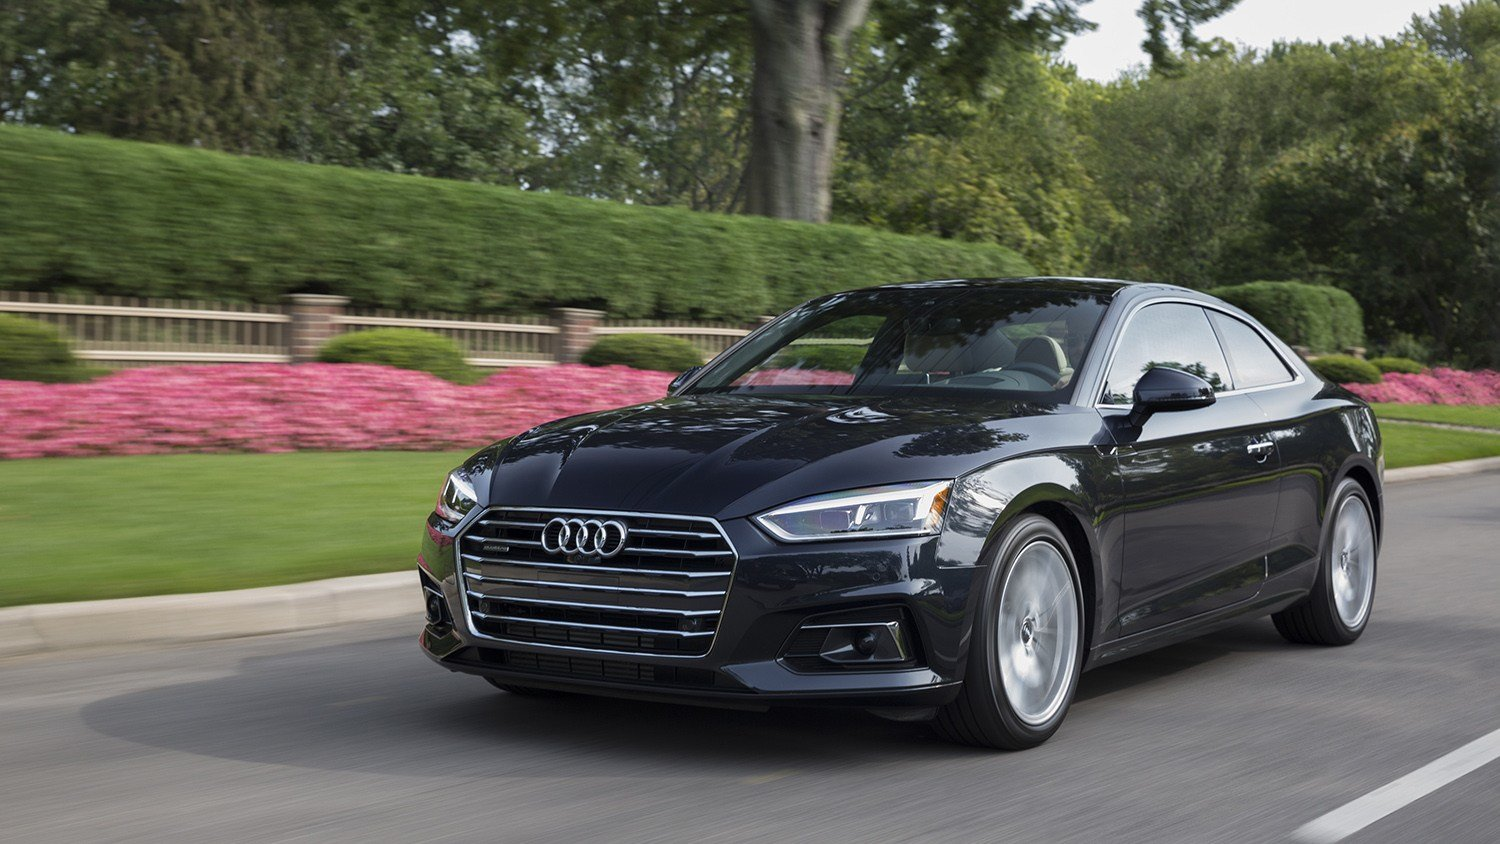 Latest 2018 Audi A5 Coupe 2 0T Quattro New Car Reviews Free Download